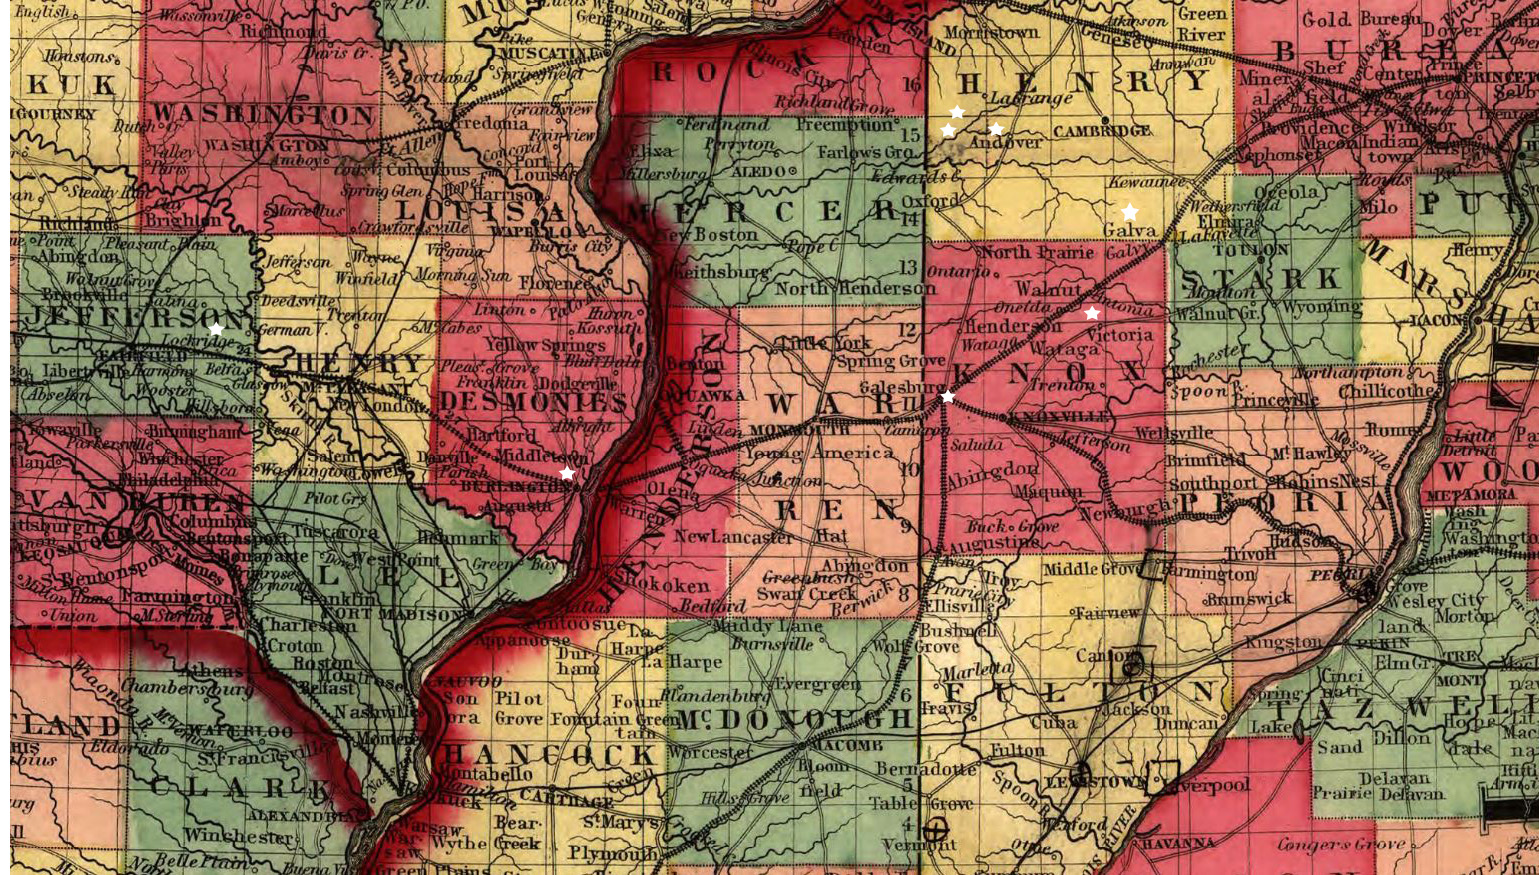 Illinois henry county andover - Johnson S New Railroad And Township Copper Plate Map Of Illinois Iowa Missouri From The Latest And Best Authorities New York 1859 C1857